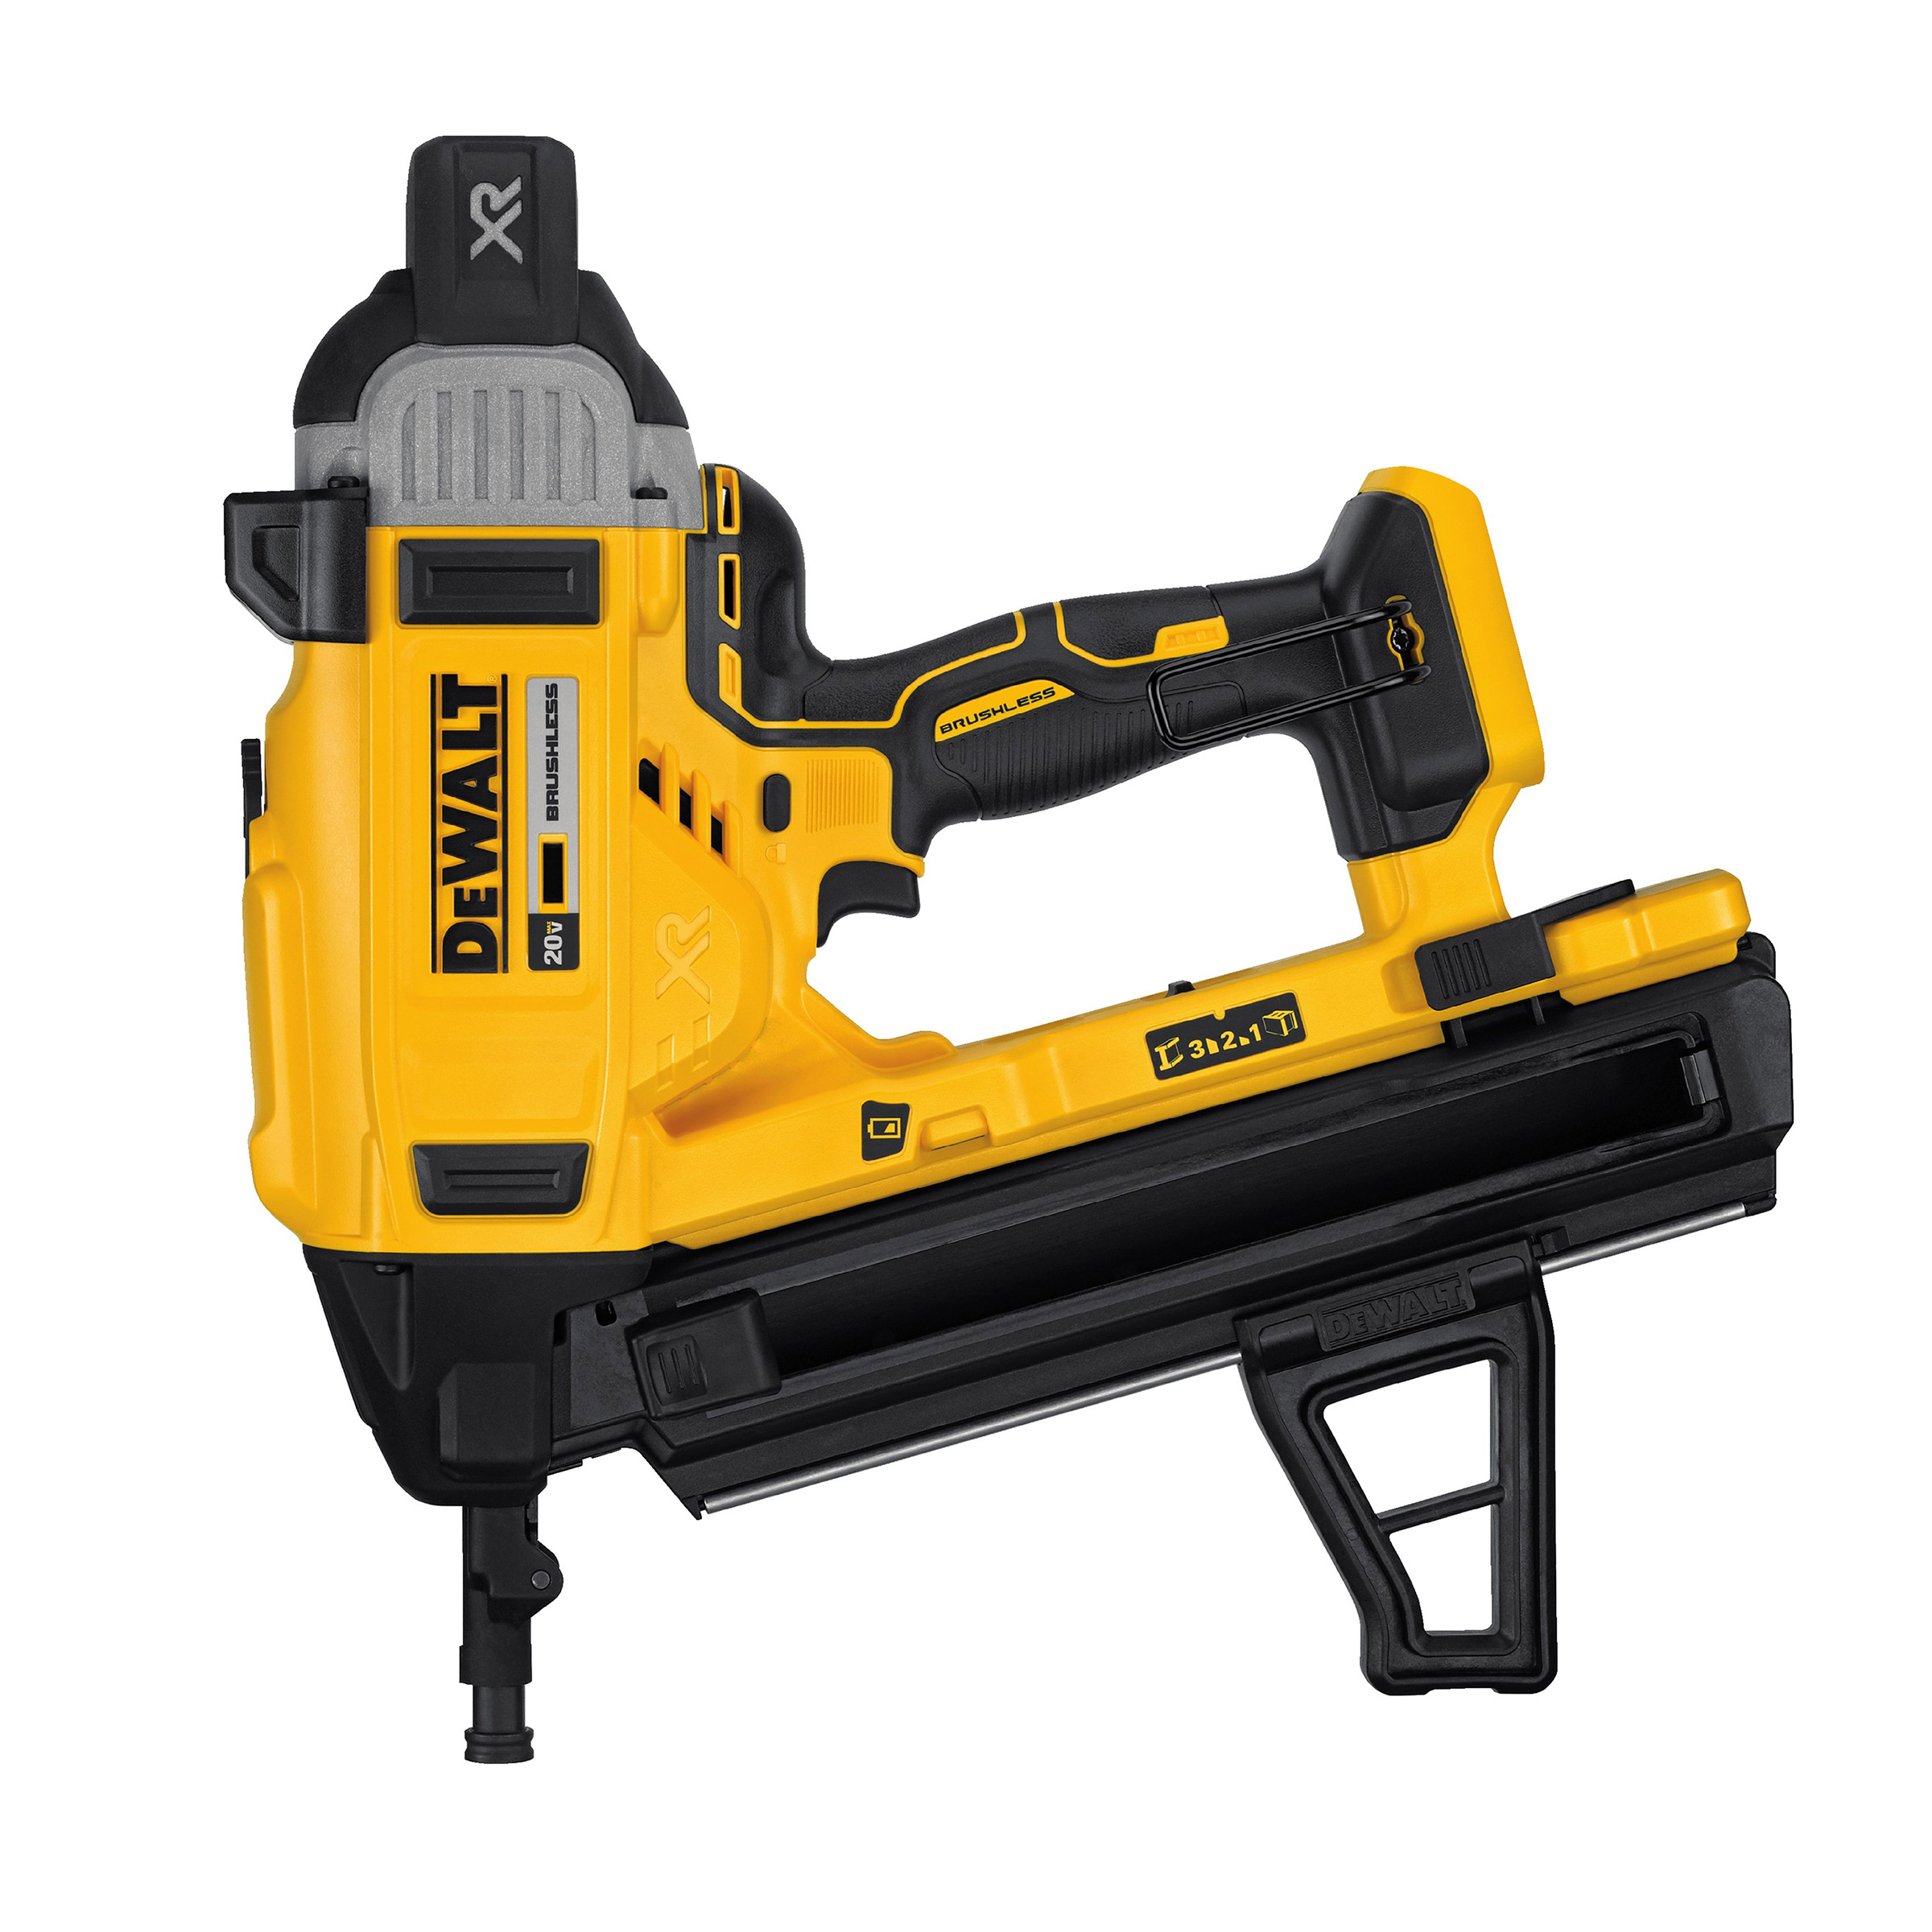 Dewalt DCN890 20V Concrete Nailer Spotted in the UK is also coming ...